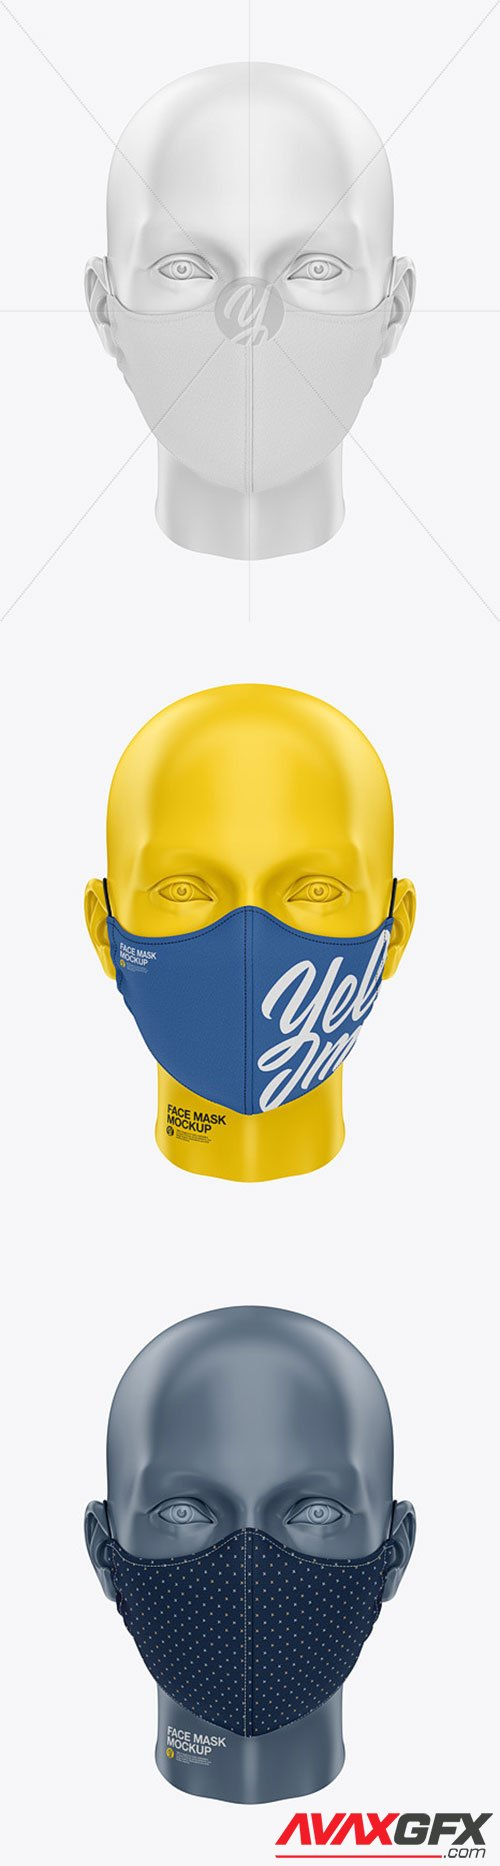 Face Mask with Elastic Cord and Stopper - Front View 61447